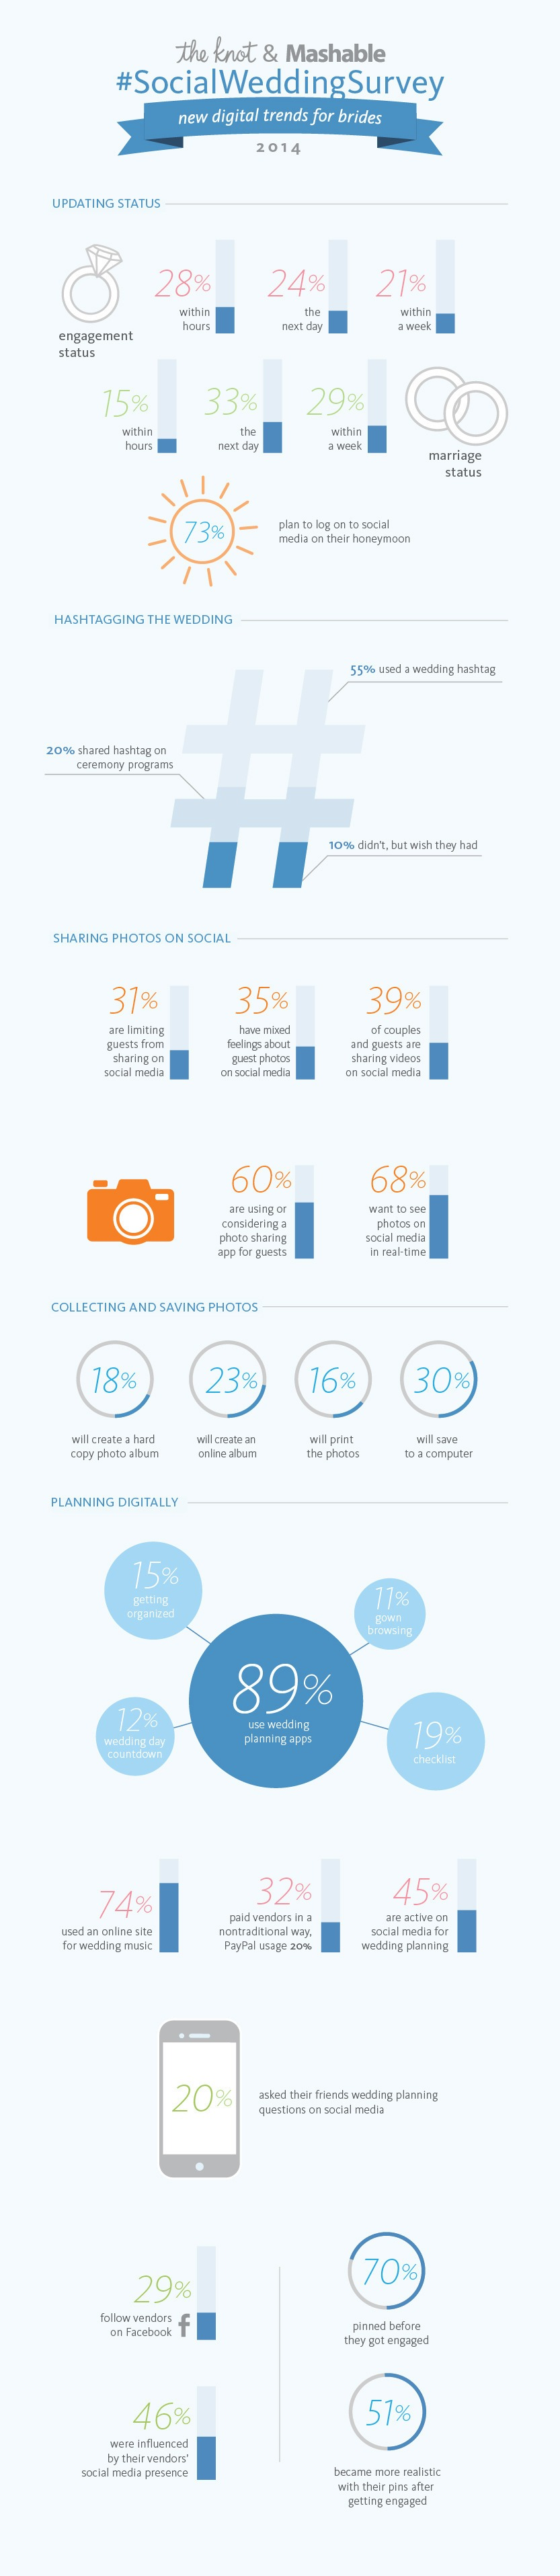 The-Knot-Mashable-SocialWeddingSurvey-Infographic-FINAL